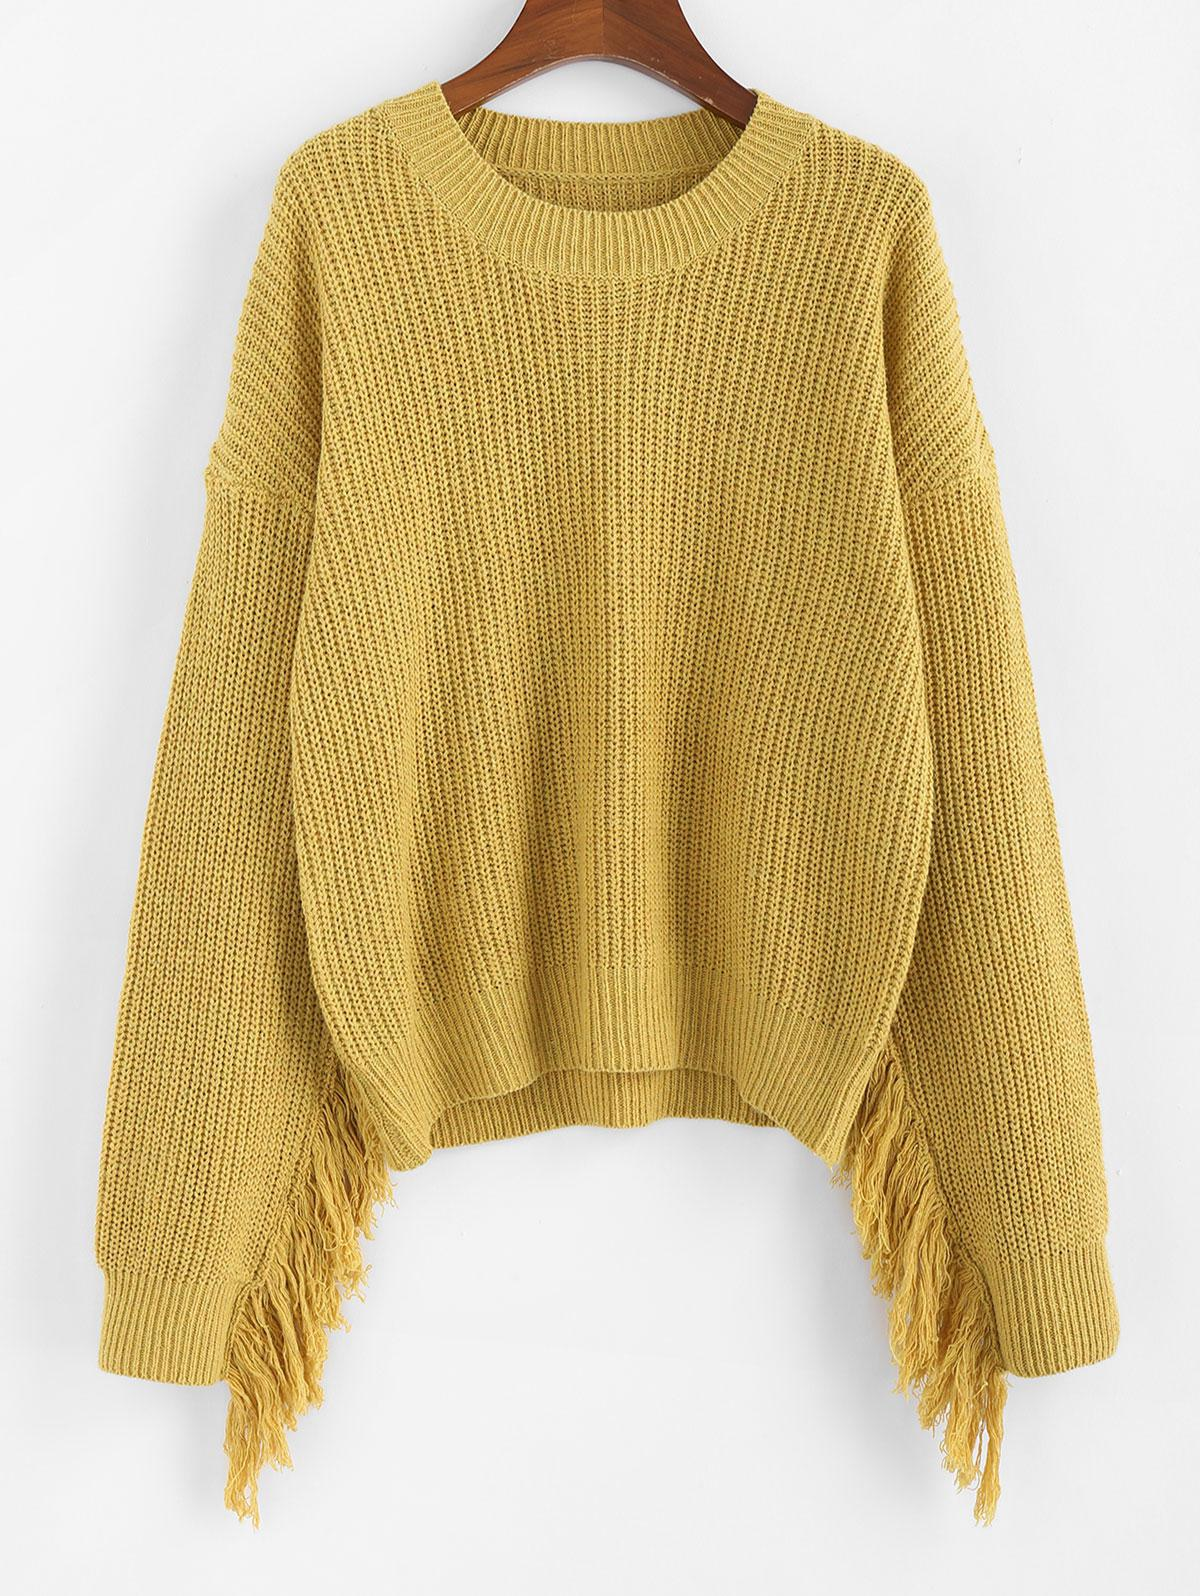 ZAFUL Fringed Drop Shoulder Loose Sweater